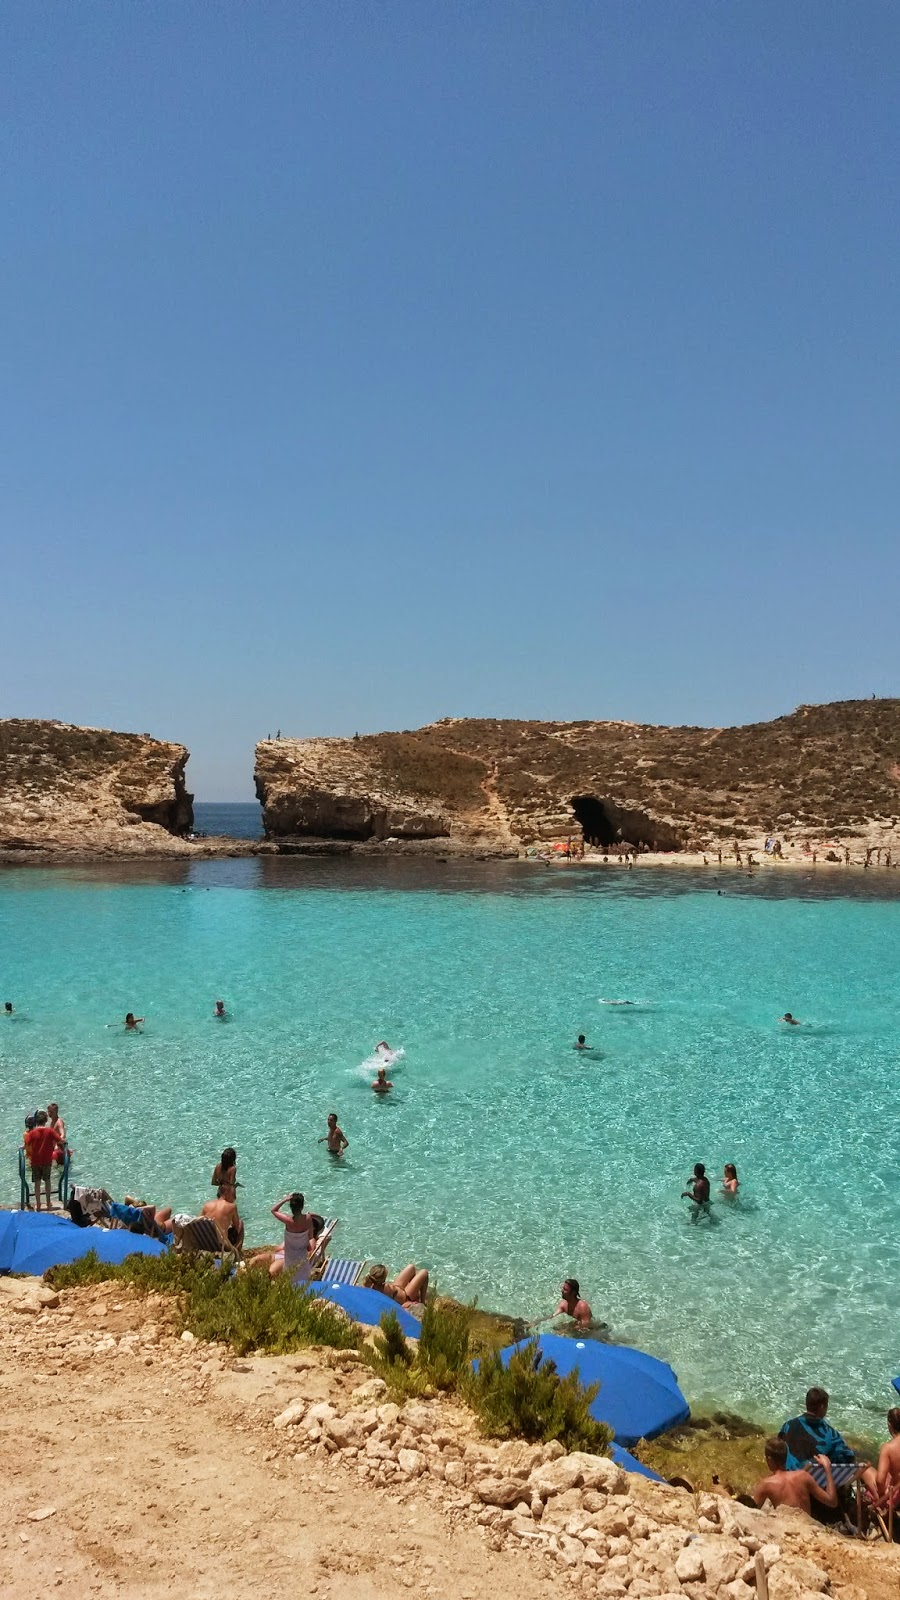 Blue Lagoon at Comino, Malta